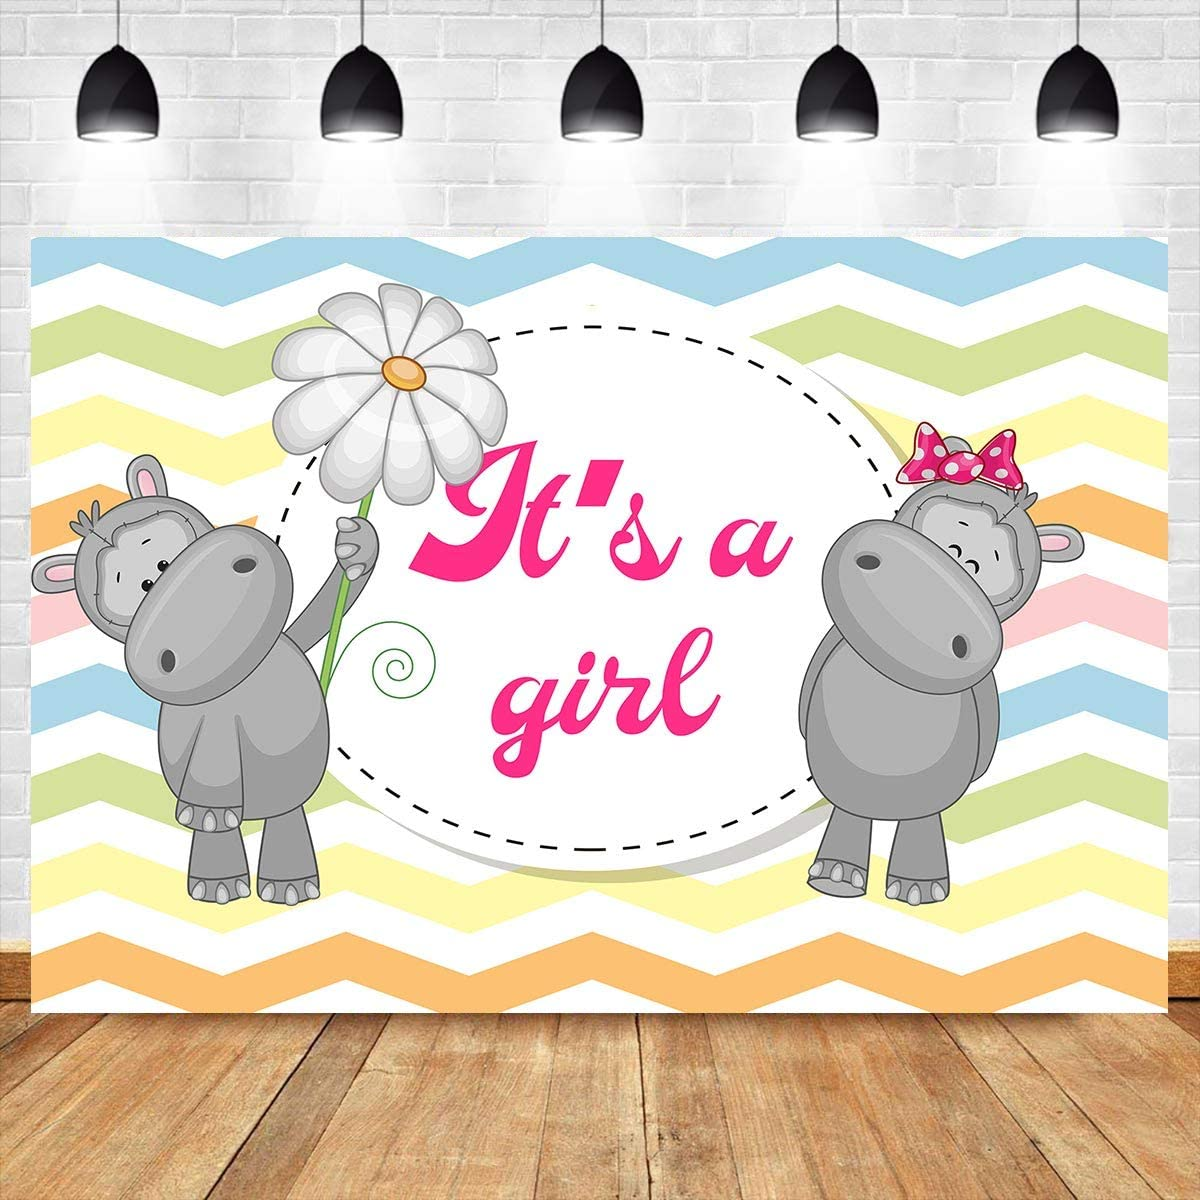 Baby Shower Photography Backdrop for Its a Girl Party Banner 10x7ft Colorful Wave Background Cake Table Decorations Photo Prop LYAY862